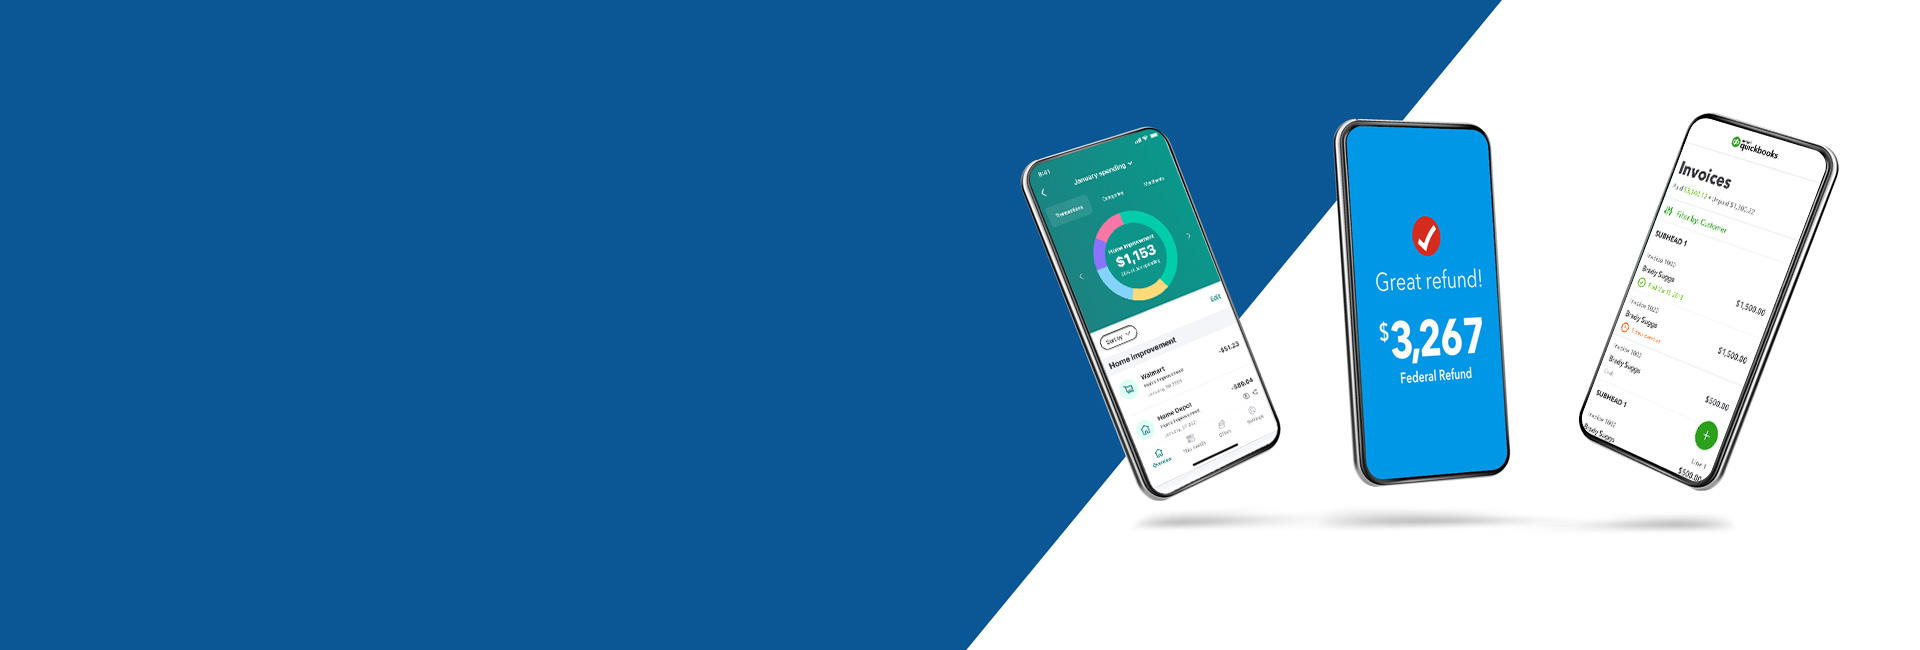 3 mobile devices showcasing QuickBooks, TurboTax, and Mint